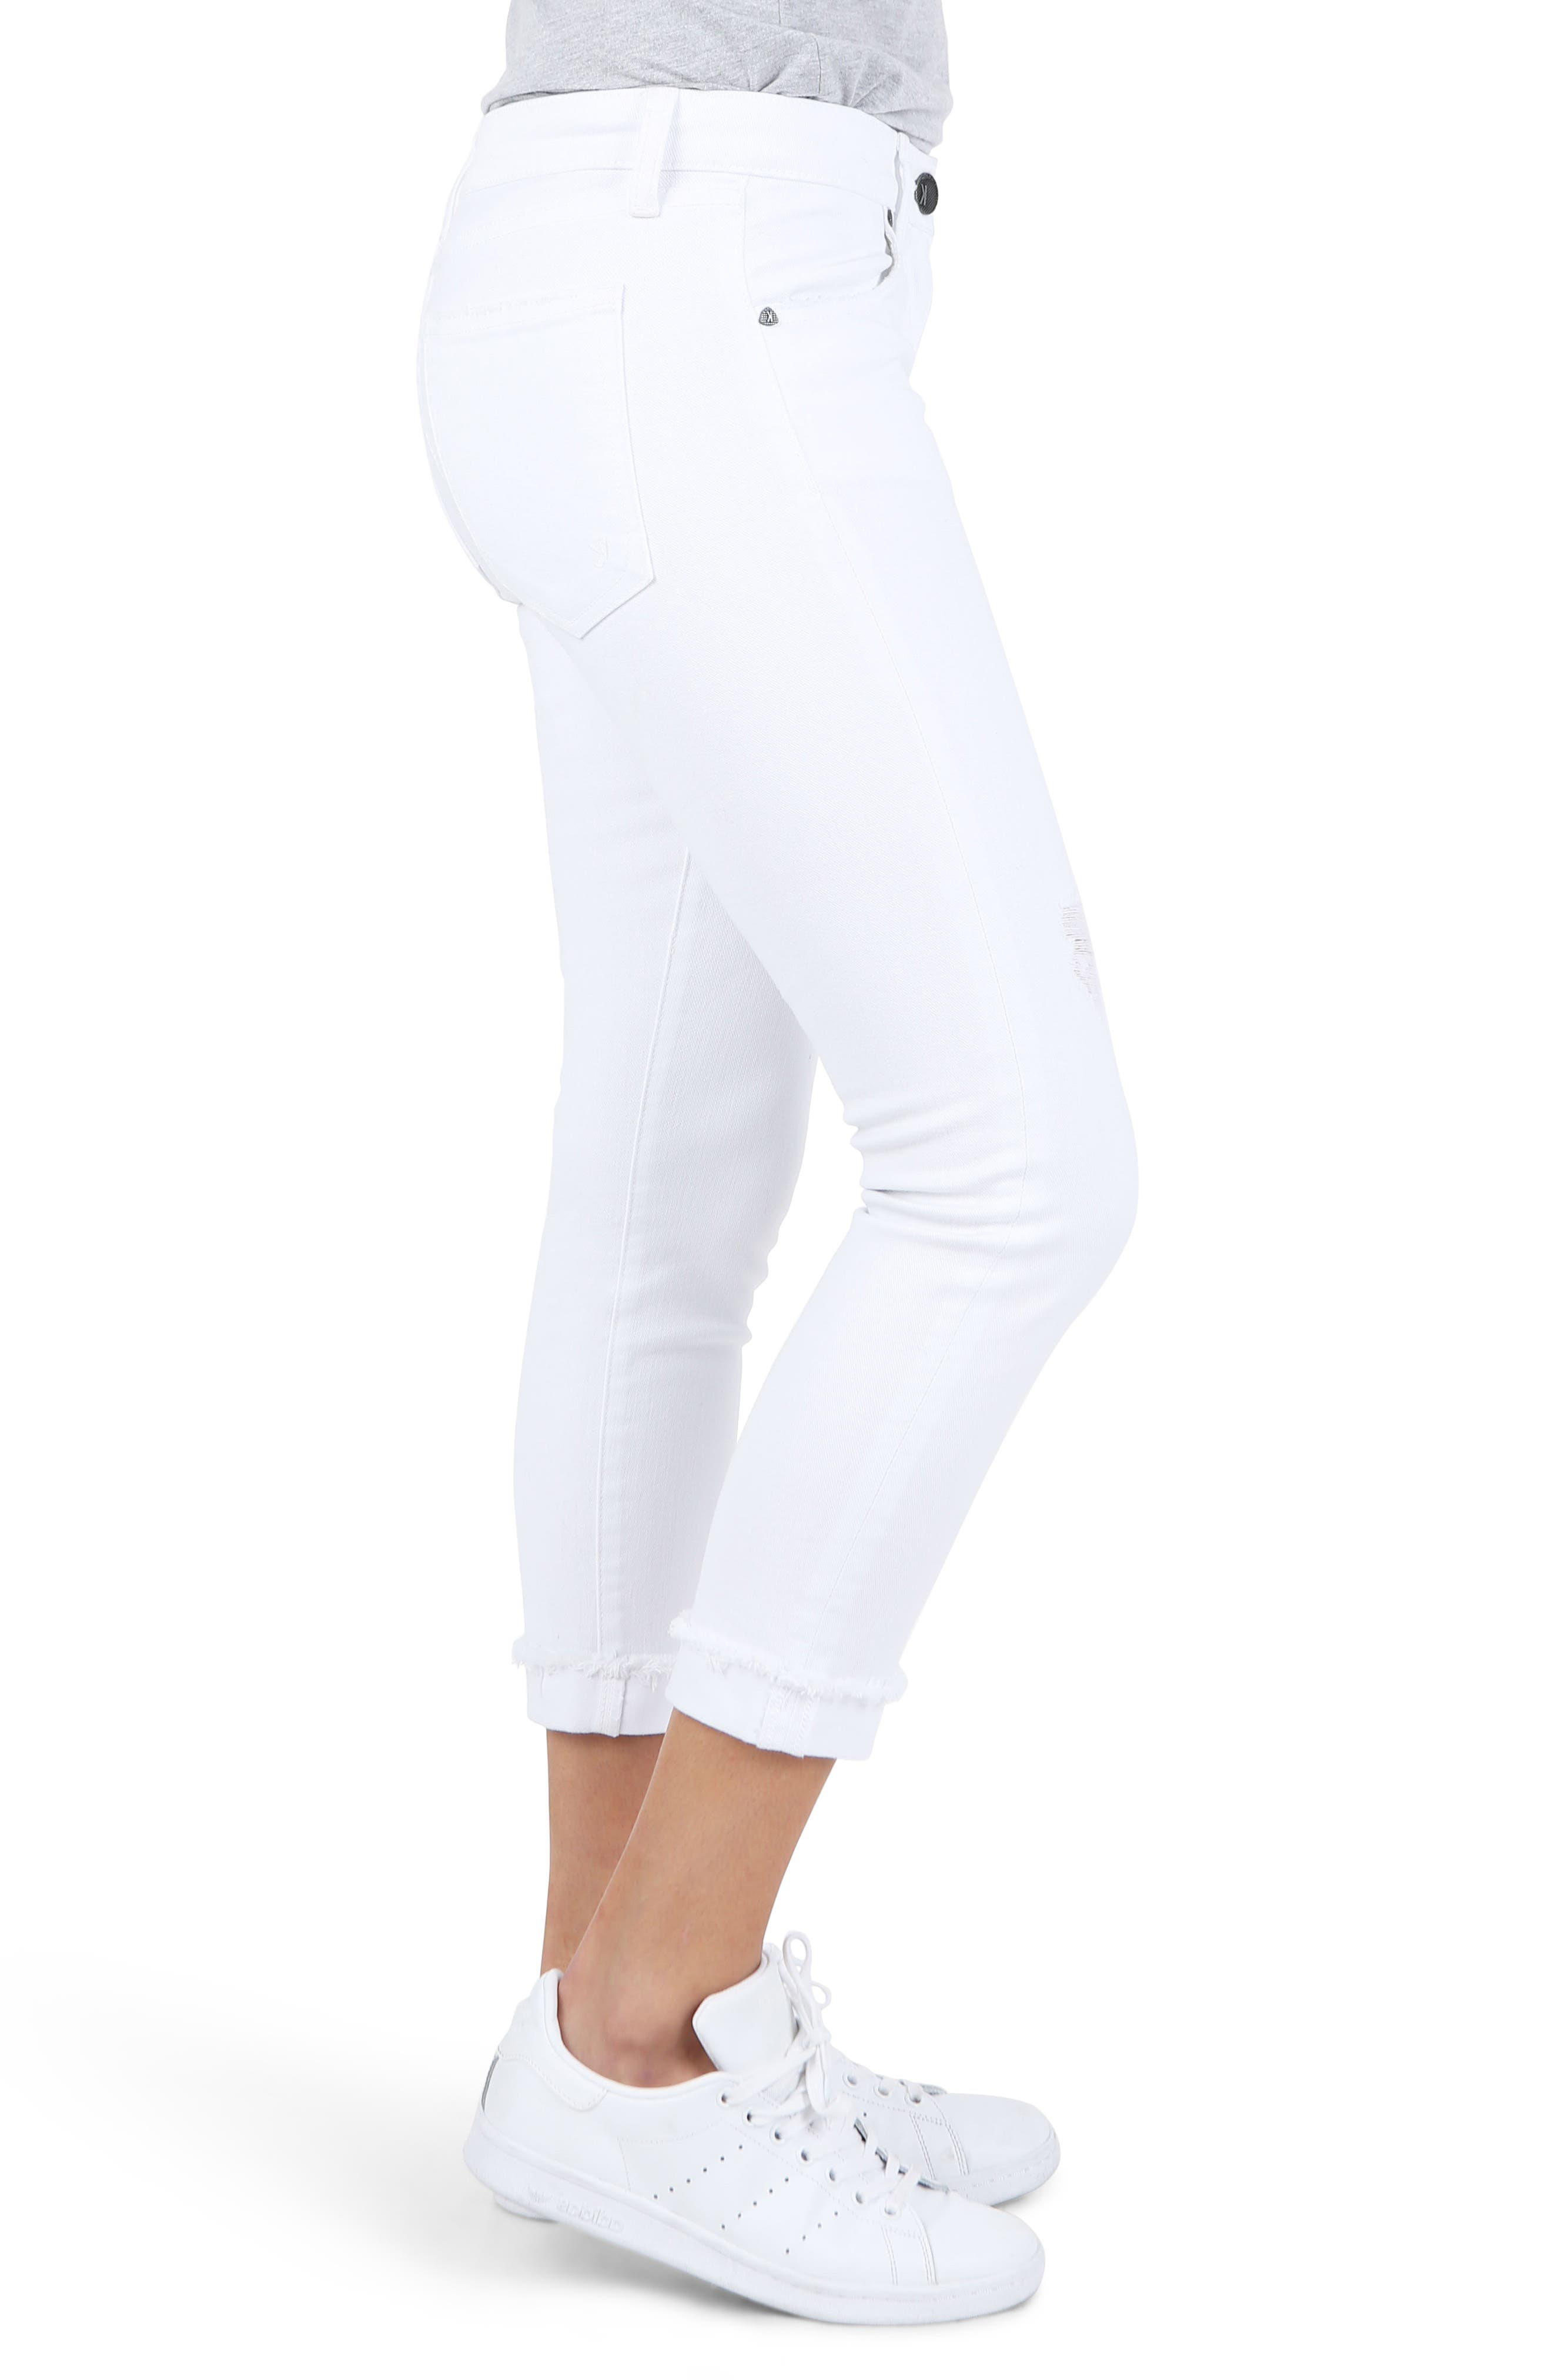 KUT Kollection Amy Crop White Jeans,                             Alternate thumbnail 3, color,                             Optical White